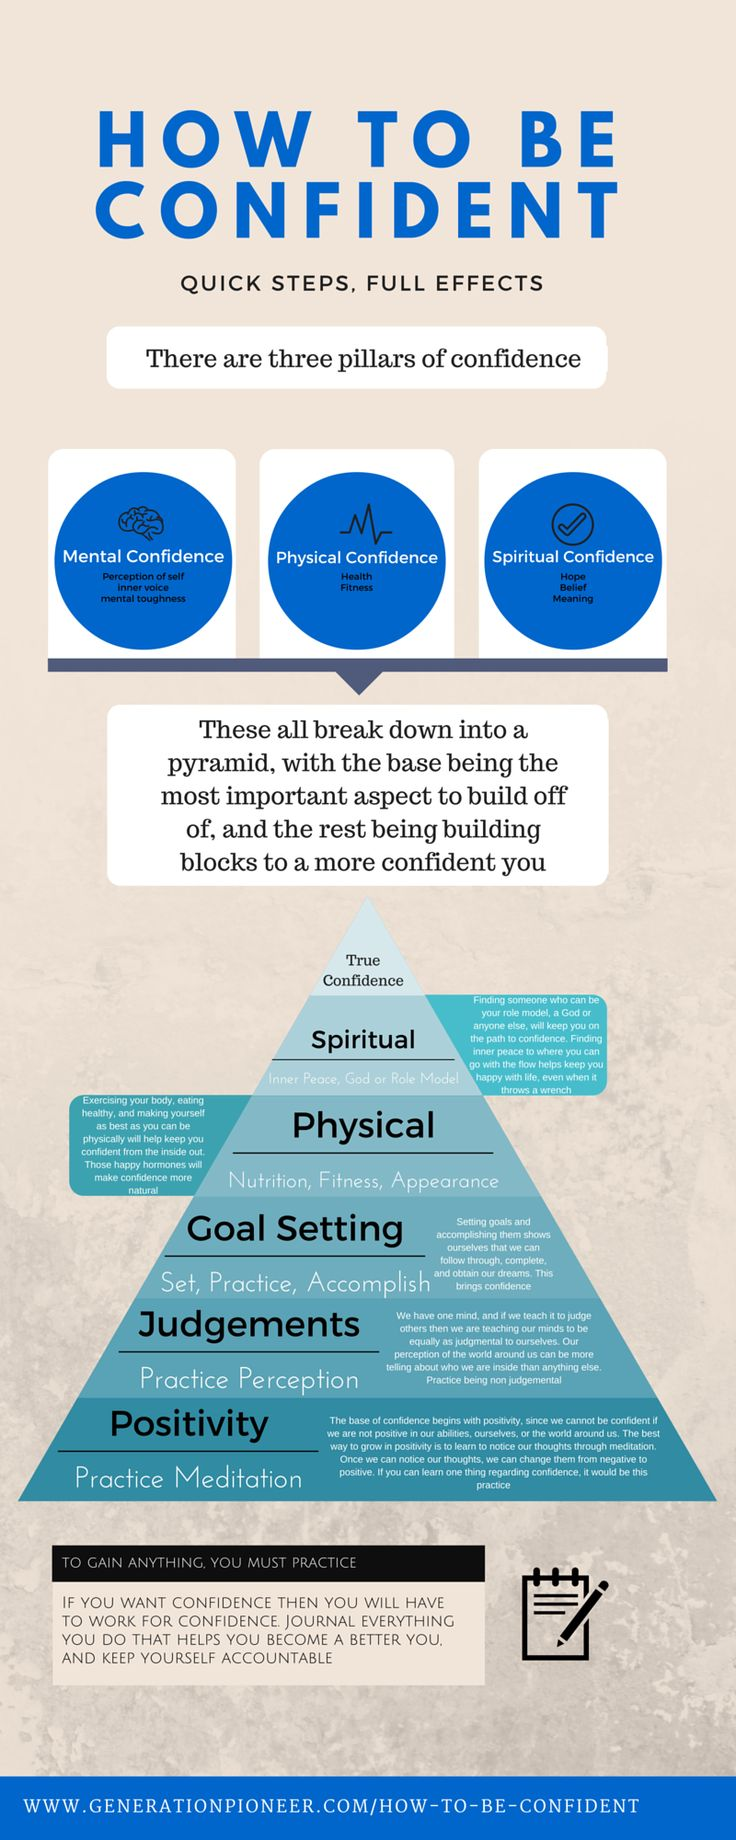 How to be confident? It is easy, but you get what you put into it. Here is an infographic along with the full description of how to become confident